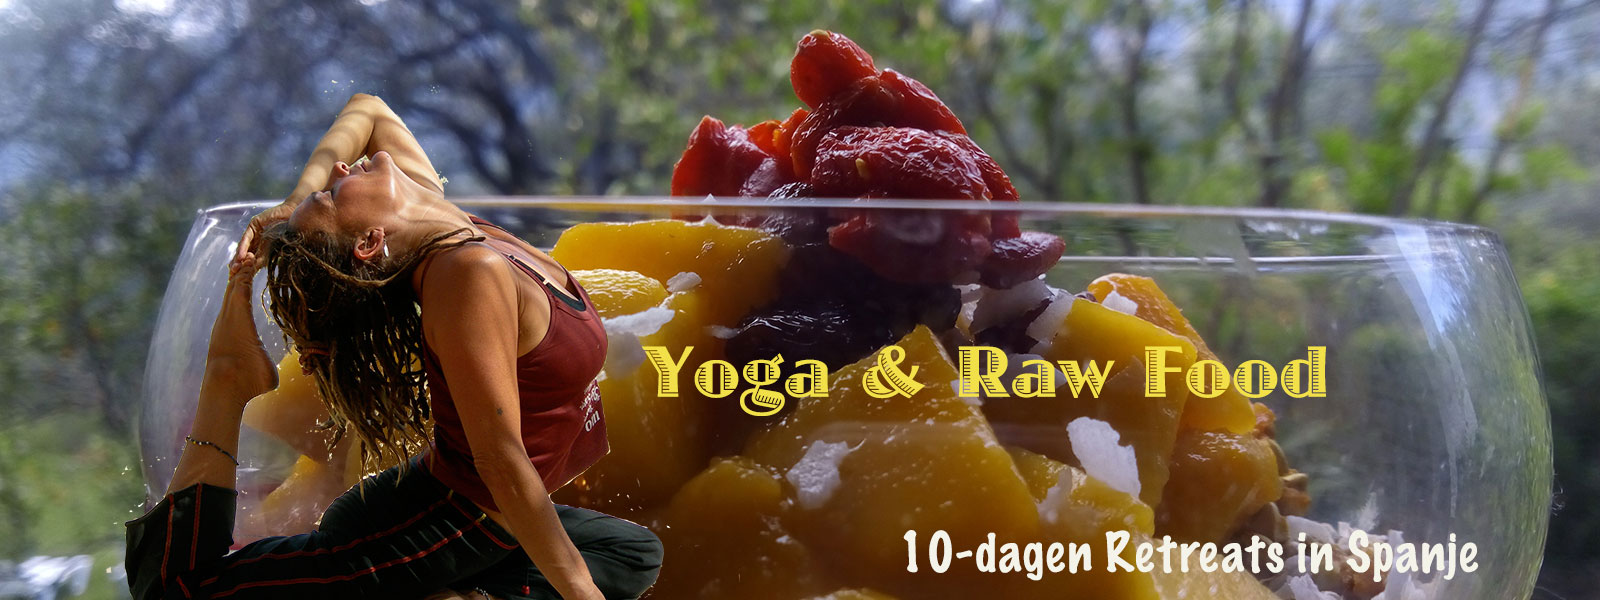 Yoga & Raw Food Retreats